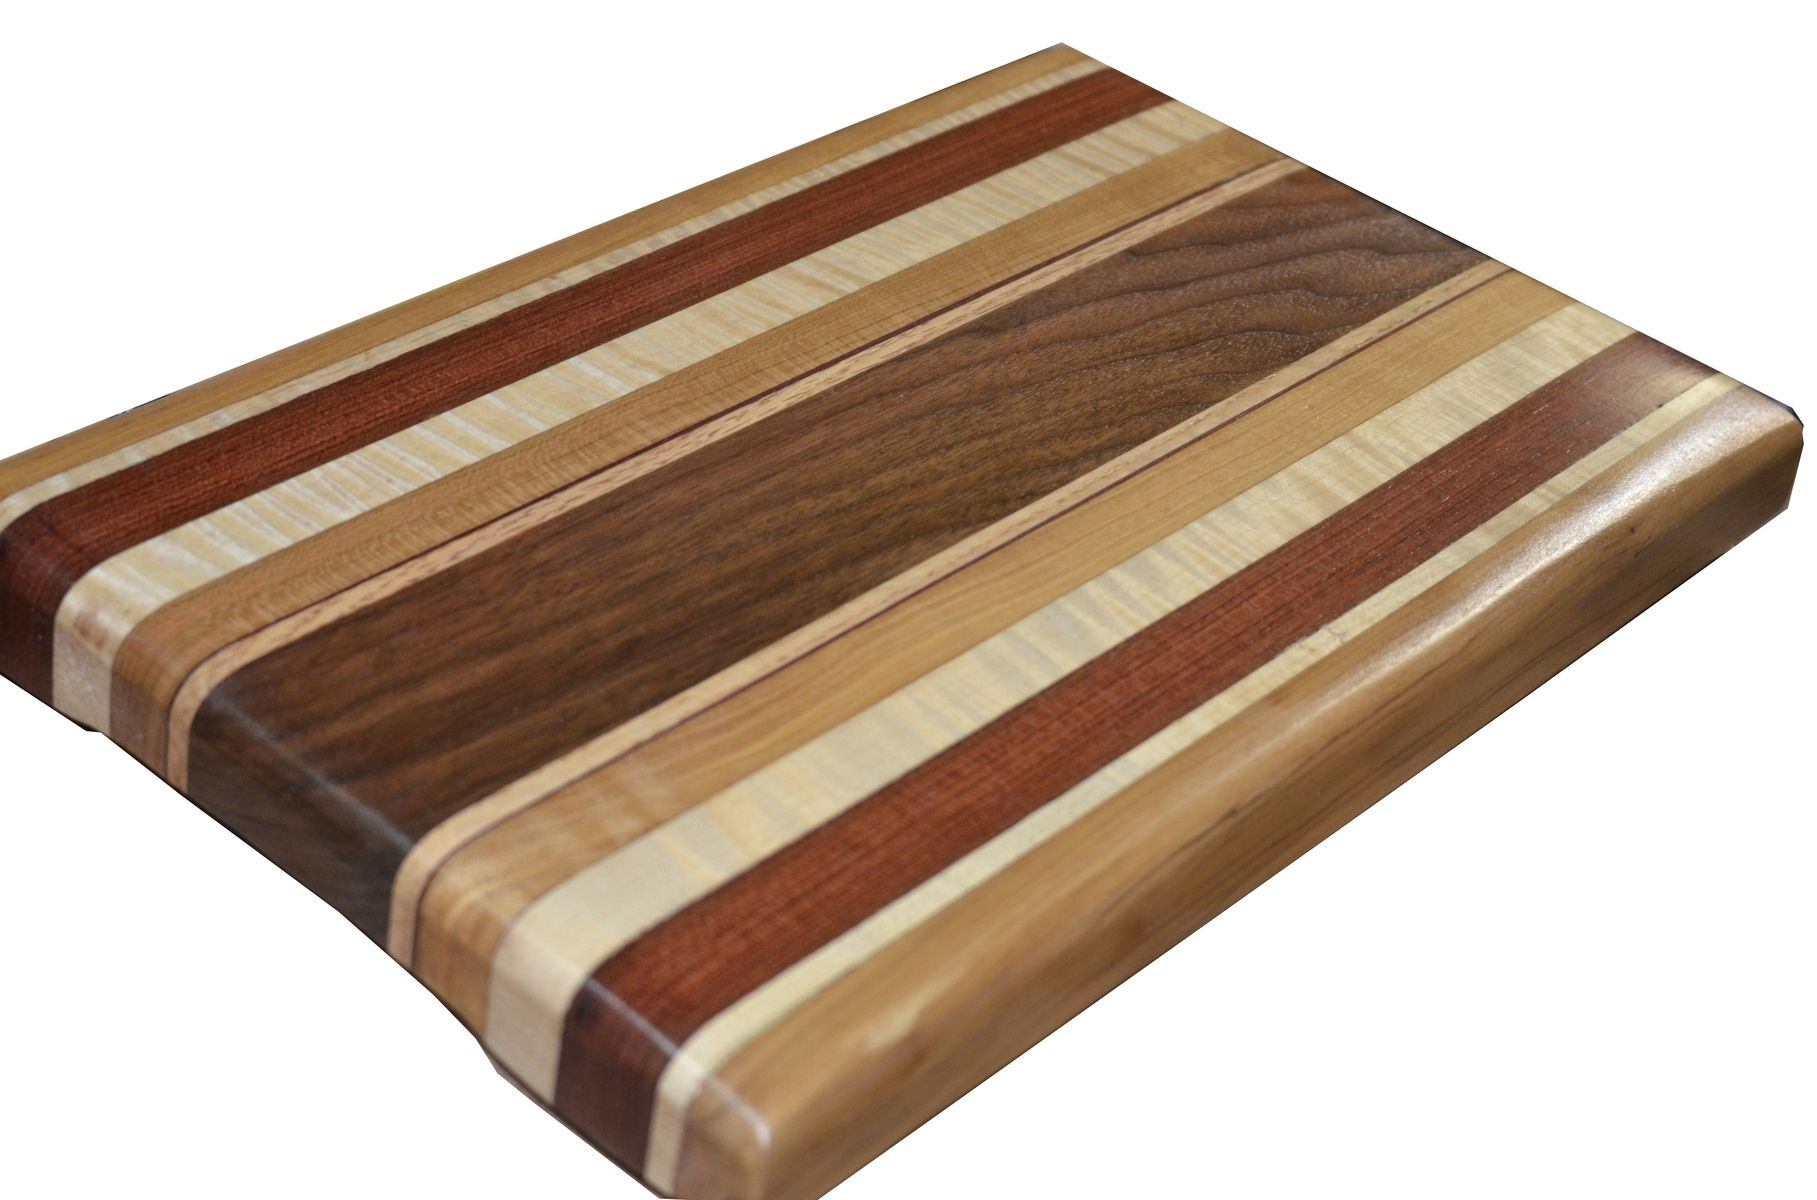 buy a custom made exotic wood cutting board full size made to order from the joys of wood. Black Bedroom Furniture Sets. Home Design Ideas